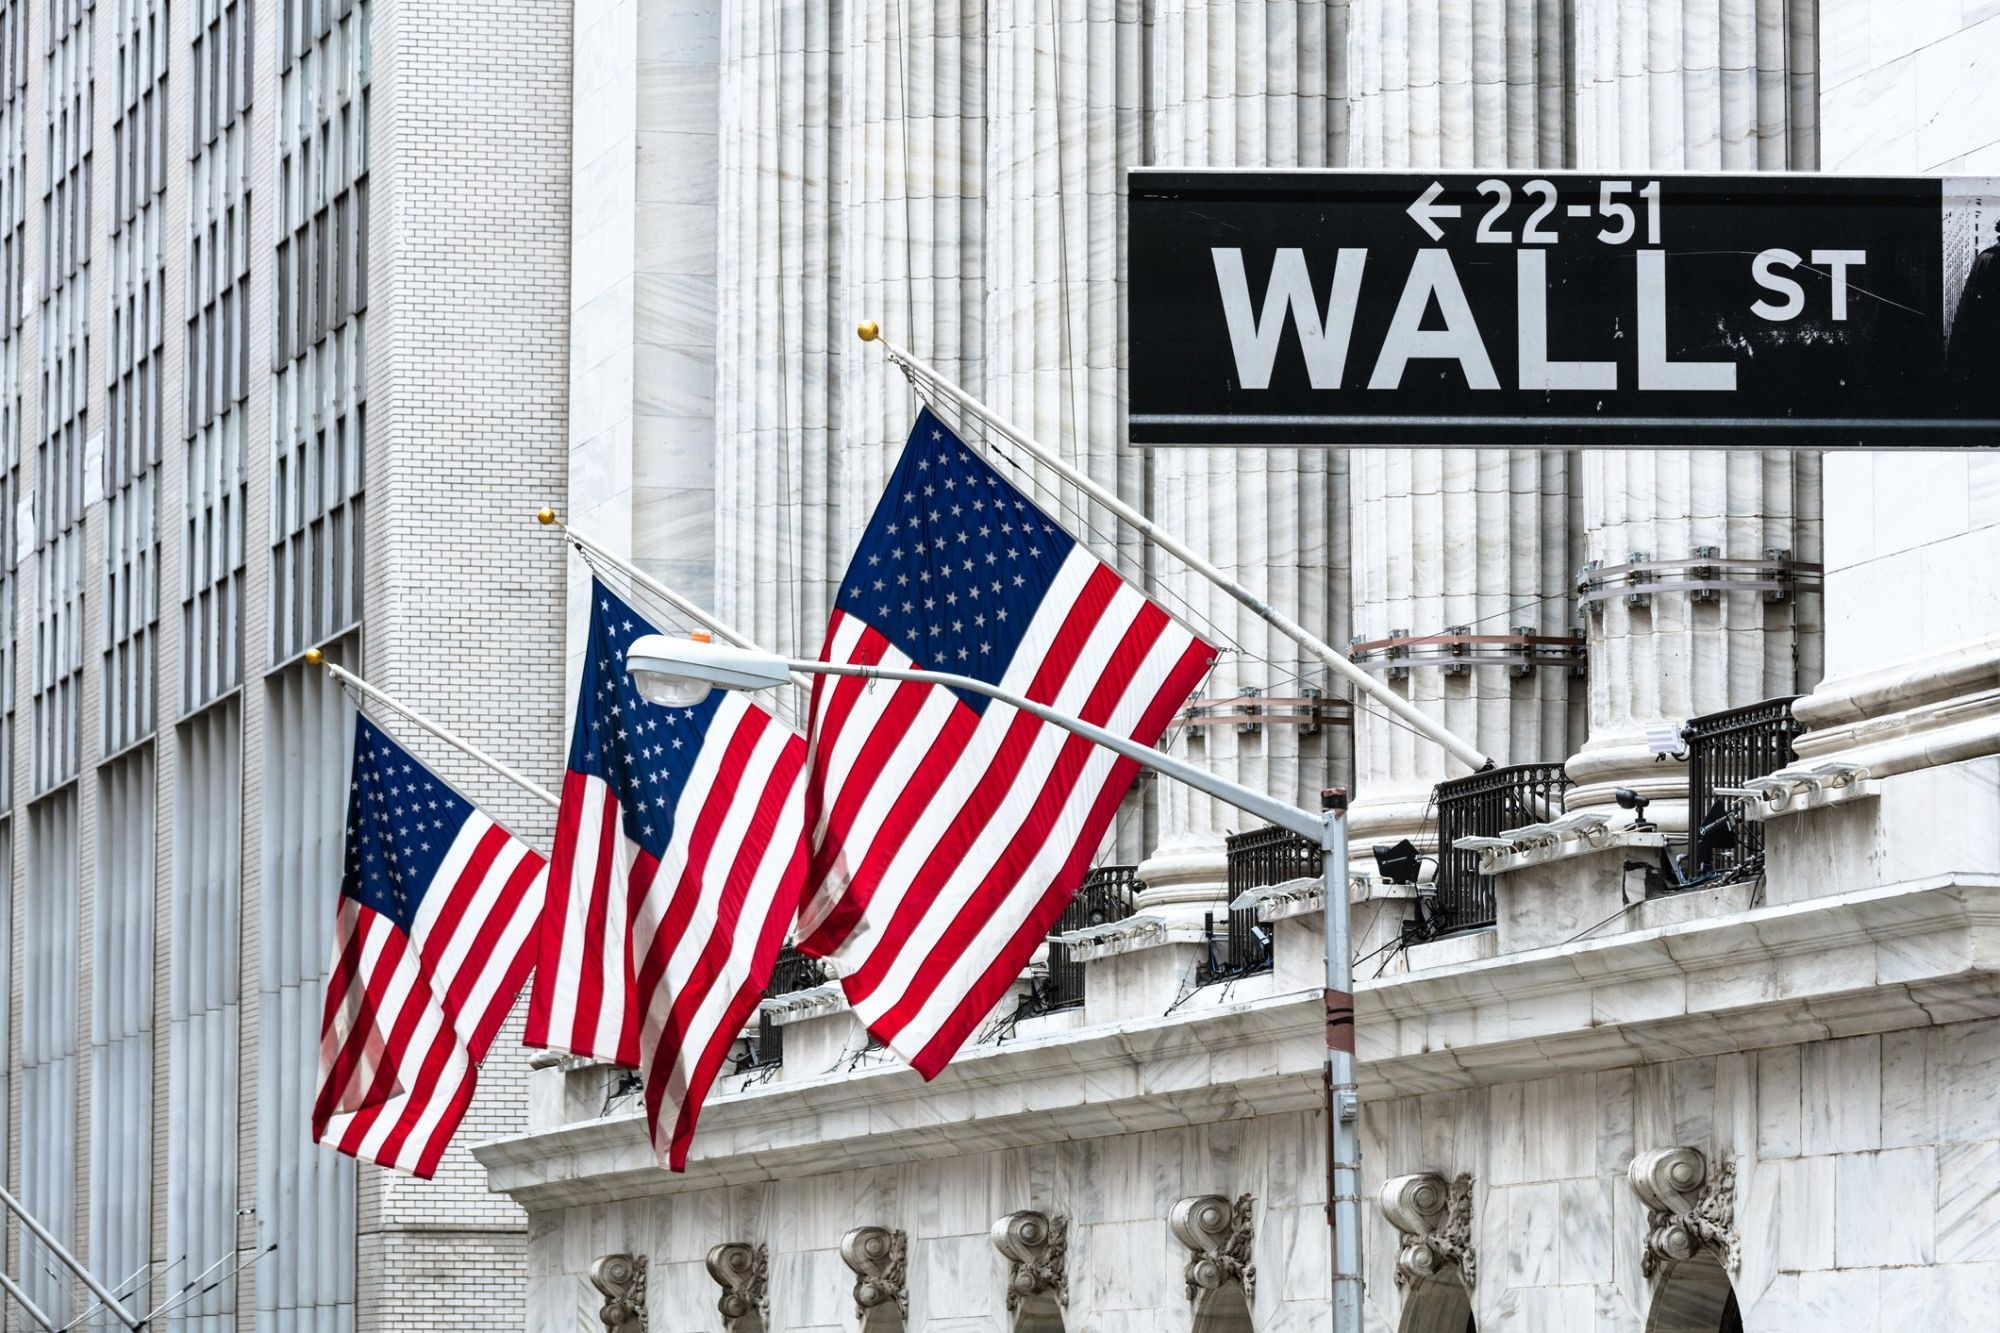 Stock Market Drops After U.S. Adds Just 20,000 Jobs -- Smallest Increase in 17 Months